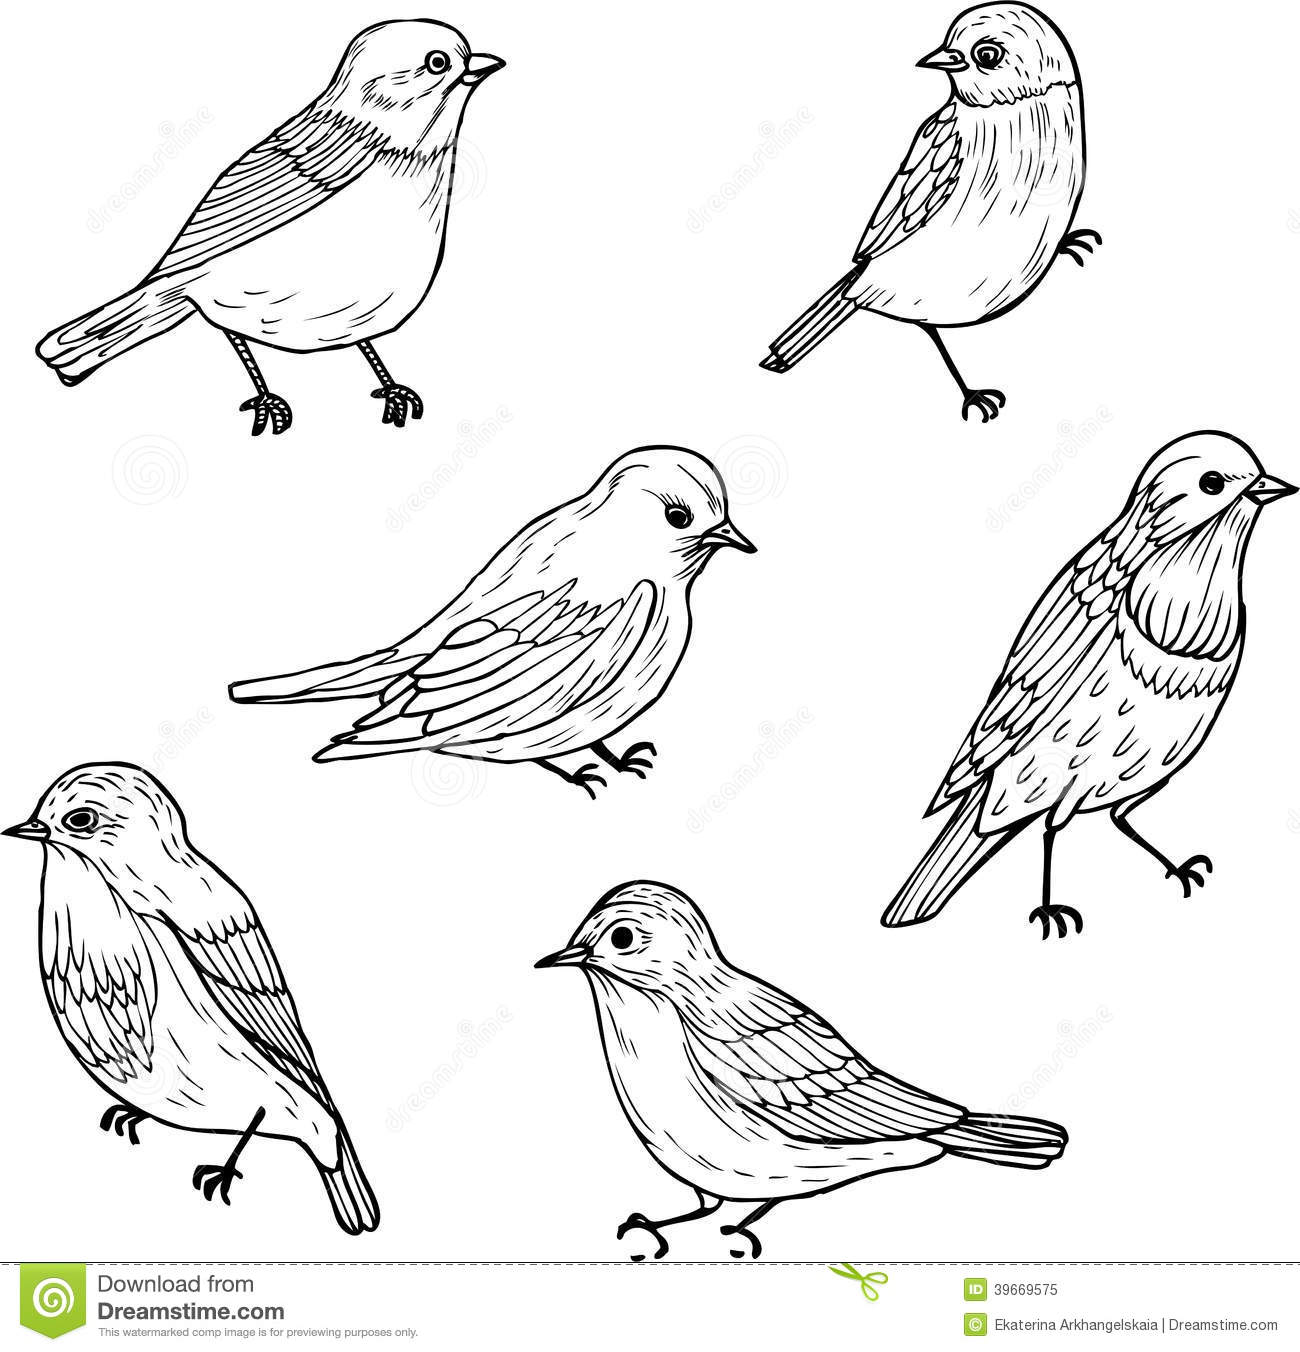 Royalty Free Stock Photo Set Linear Drawing Birds Ink Hand Drawn Vector Illustration Image39669575 together with 23131253 Korean Finger Heart Ver 2 further 73069387684 likewise Henna Hand Designs further Cheerful Tiger Vector 3441376. on gesture drawings for kids